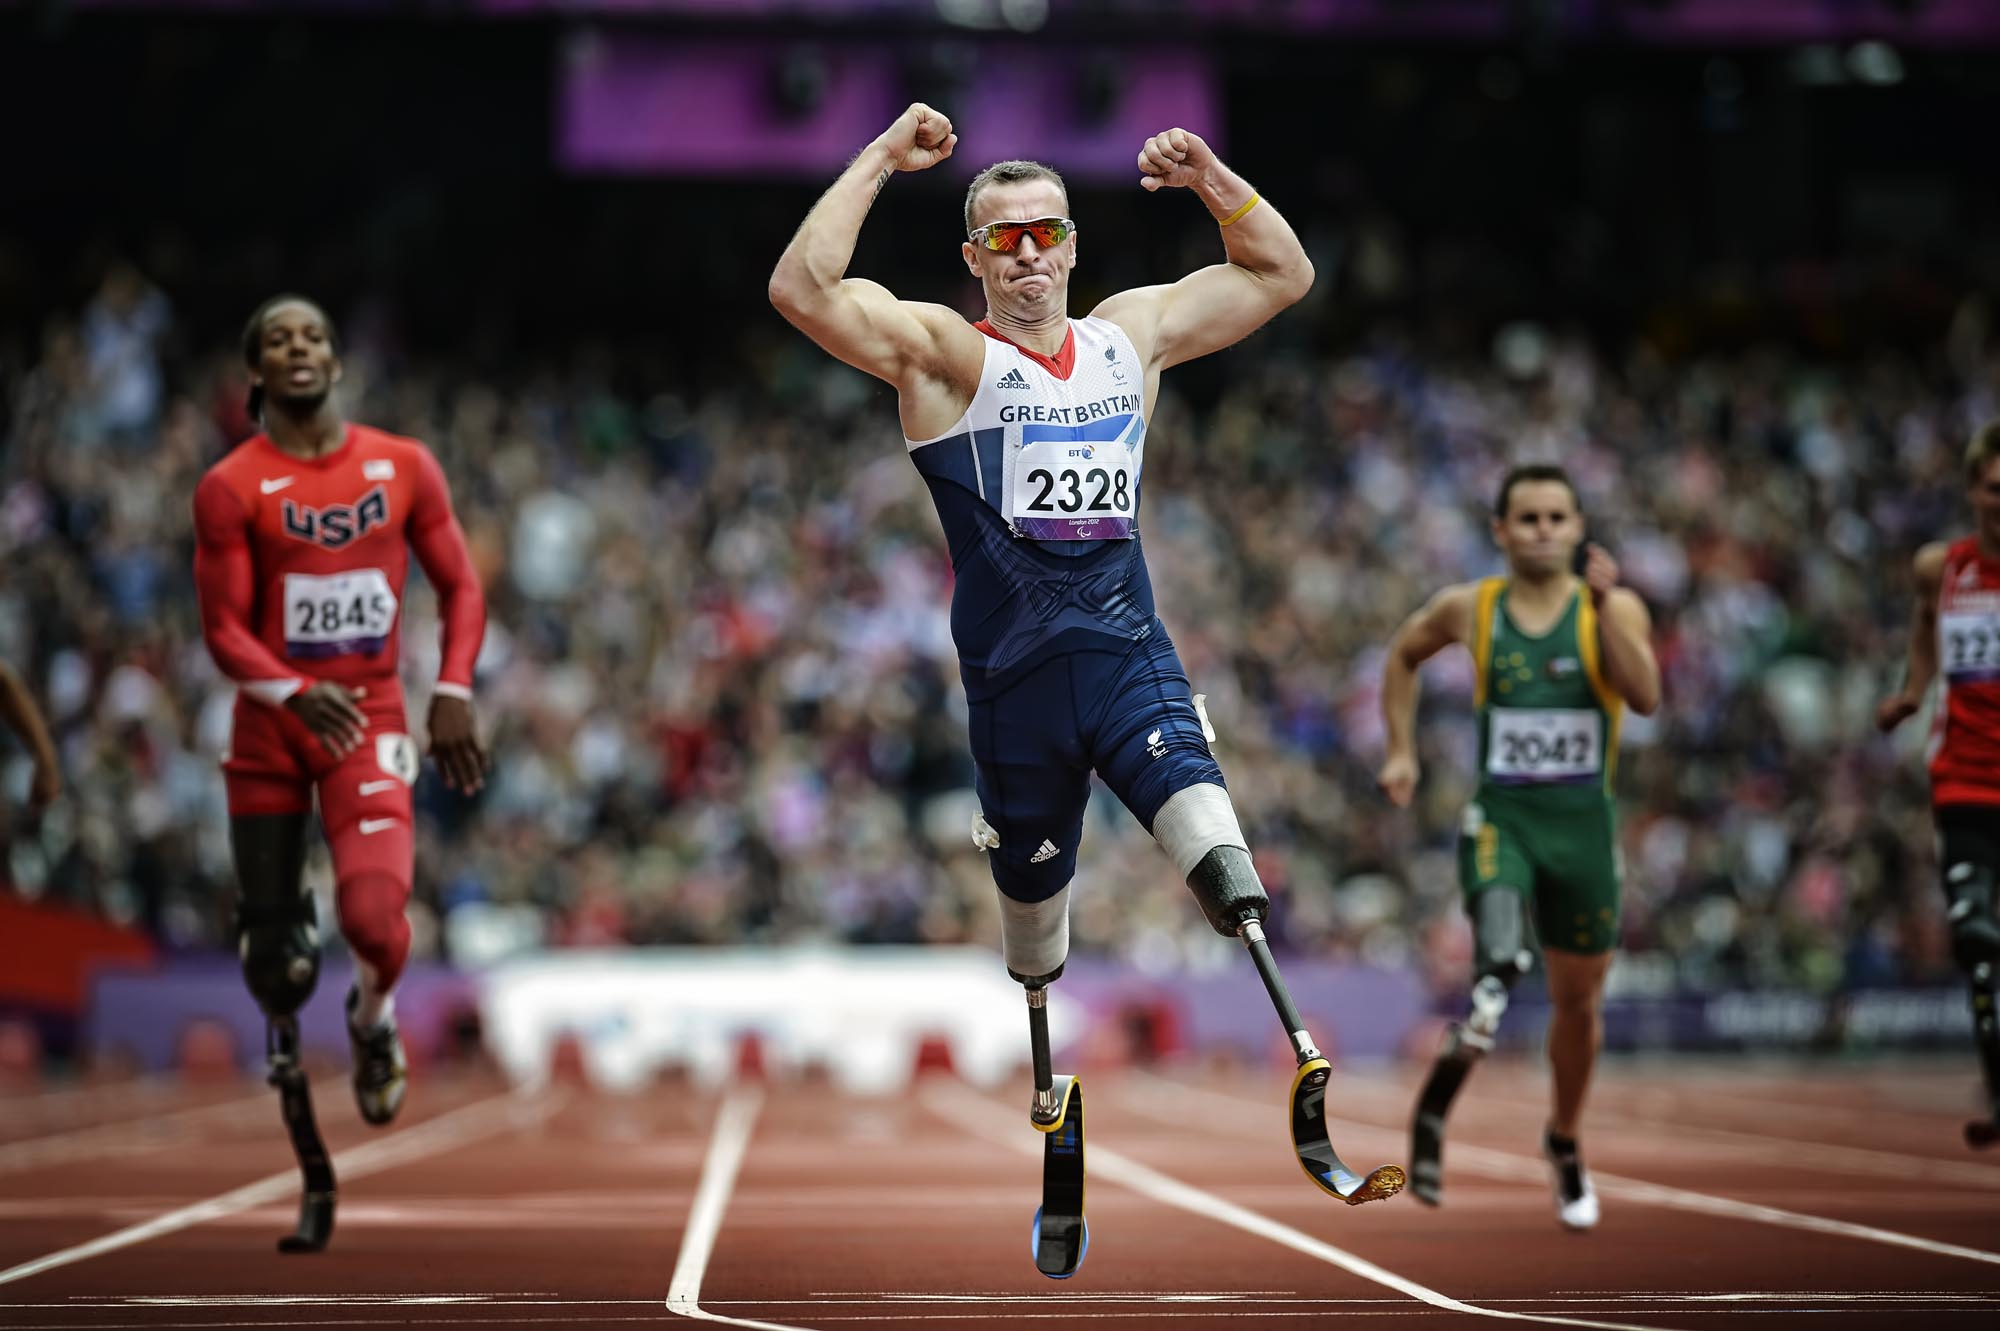 olympic and paralympic games in london After the olympic and paralympic games in london in 2012, the sport historian martin polley (2014: 255) remarked that if the motto of london 2012 was inspire a generation for hundreds of authors this.